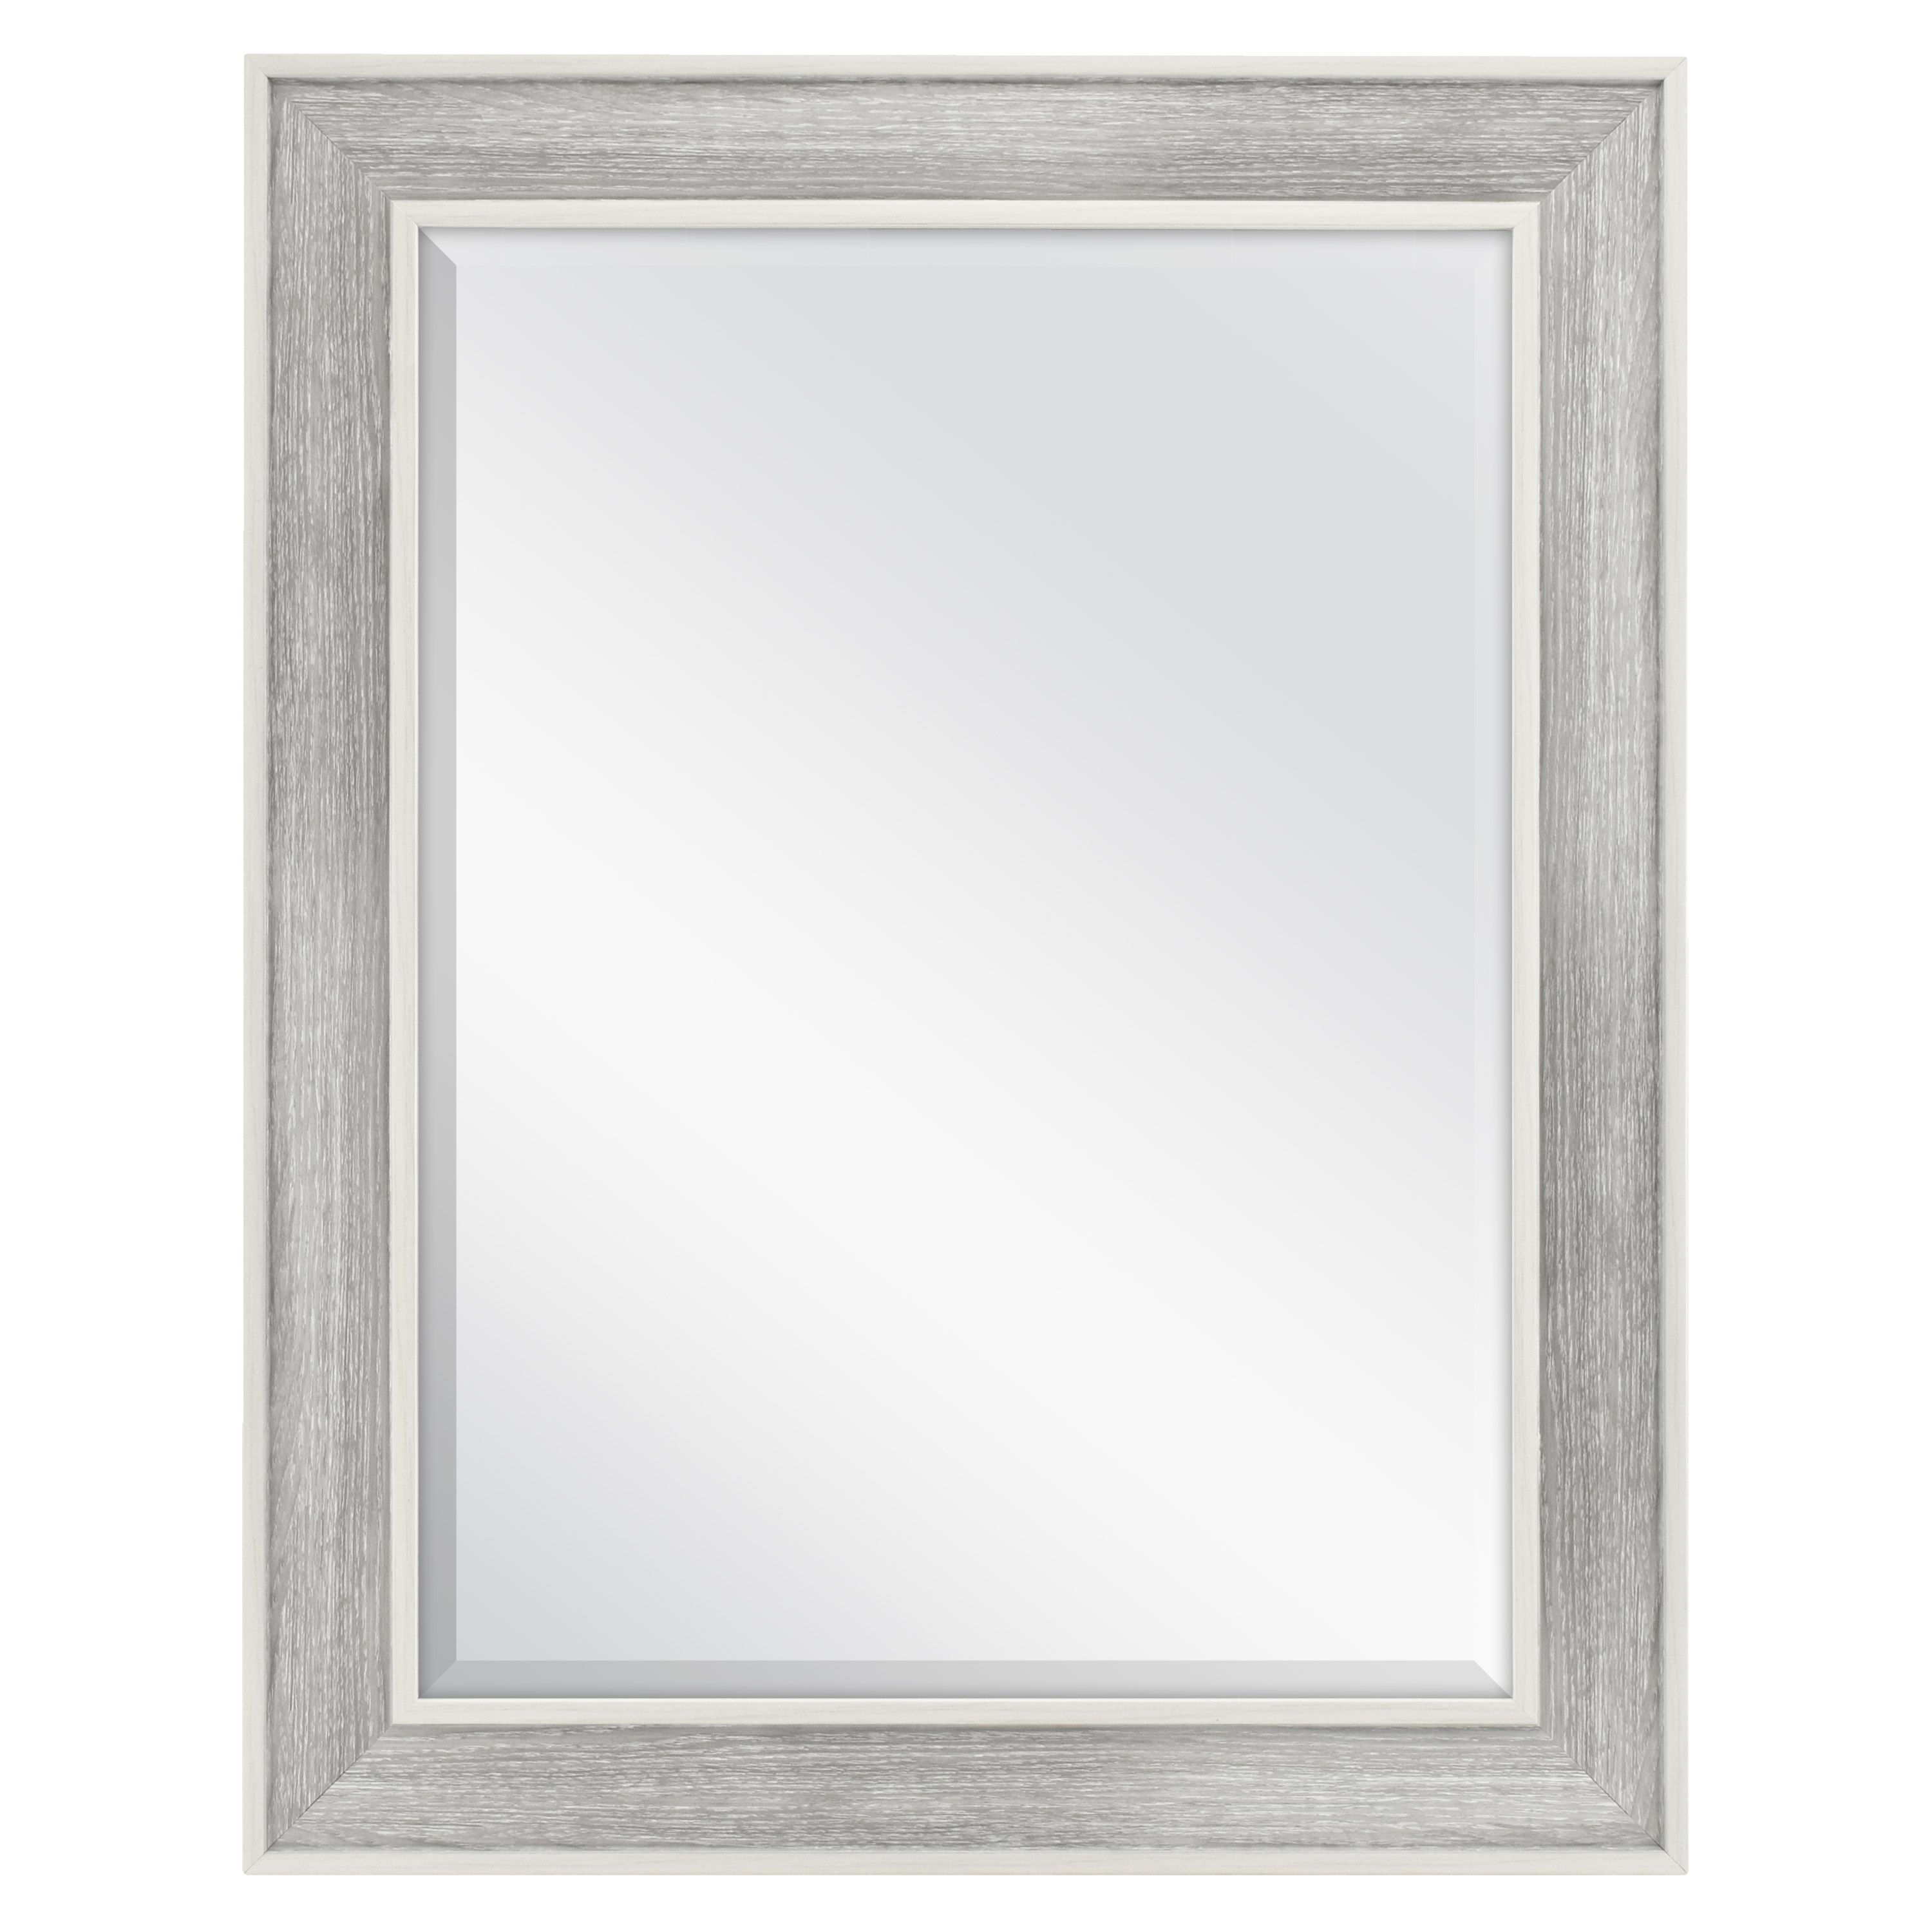 Beveled Wall Mirror better homes & gardens 23x29 coastal grey beveled wall mirror